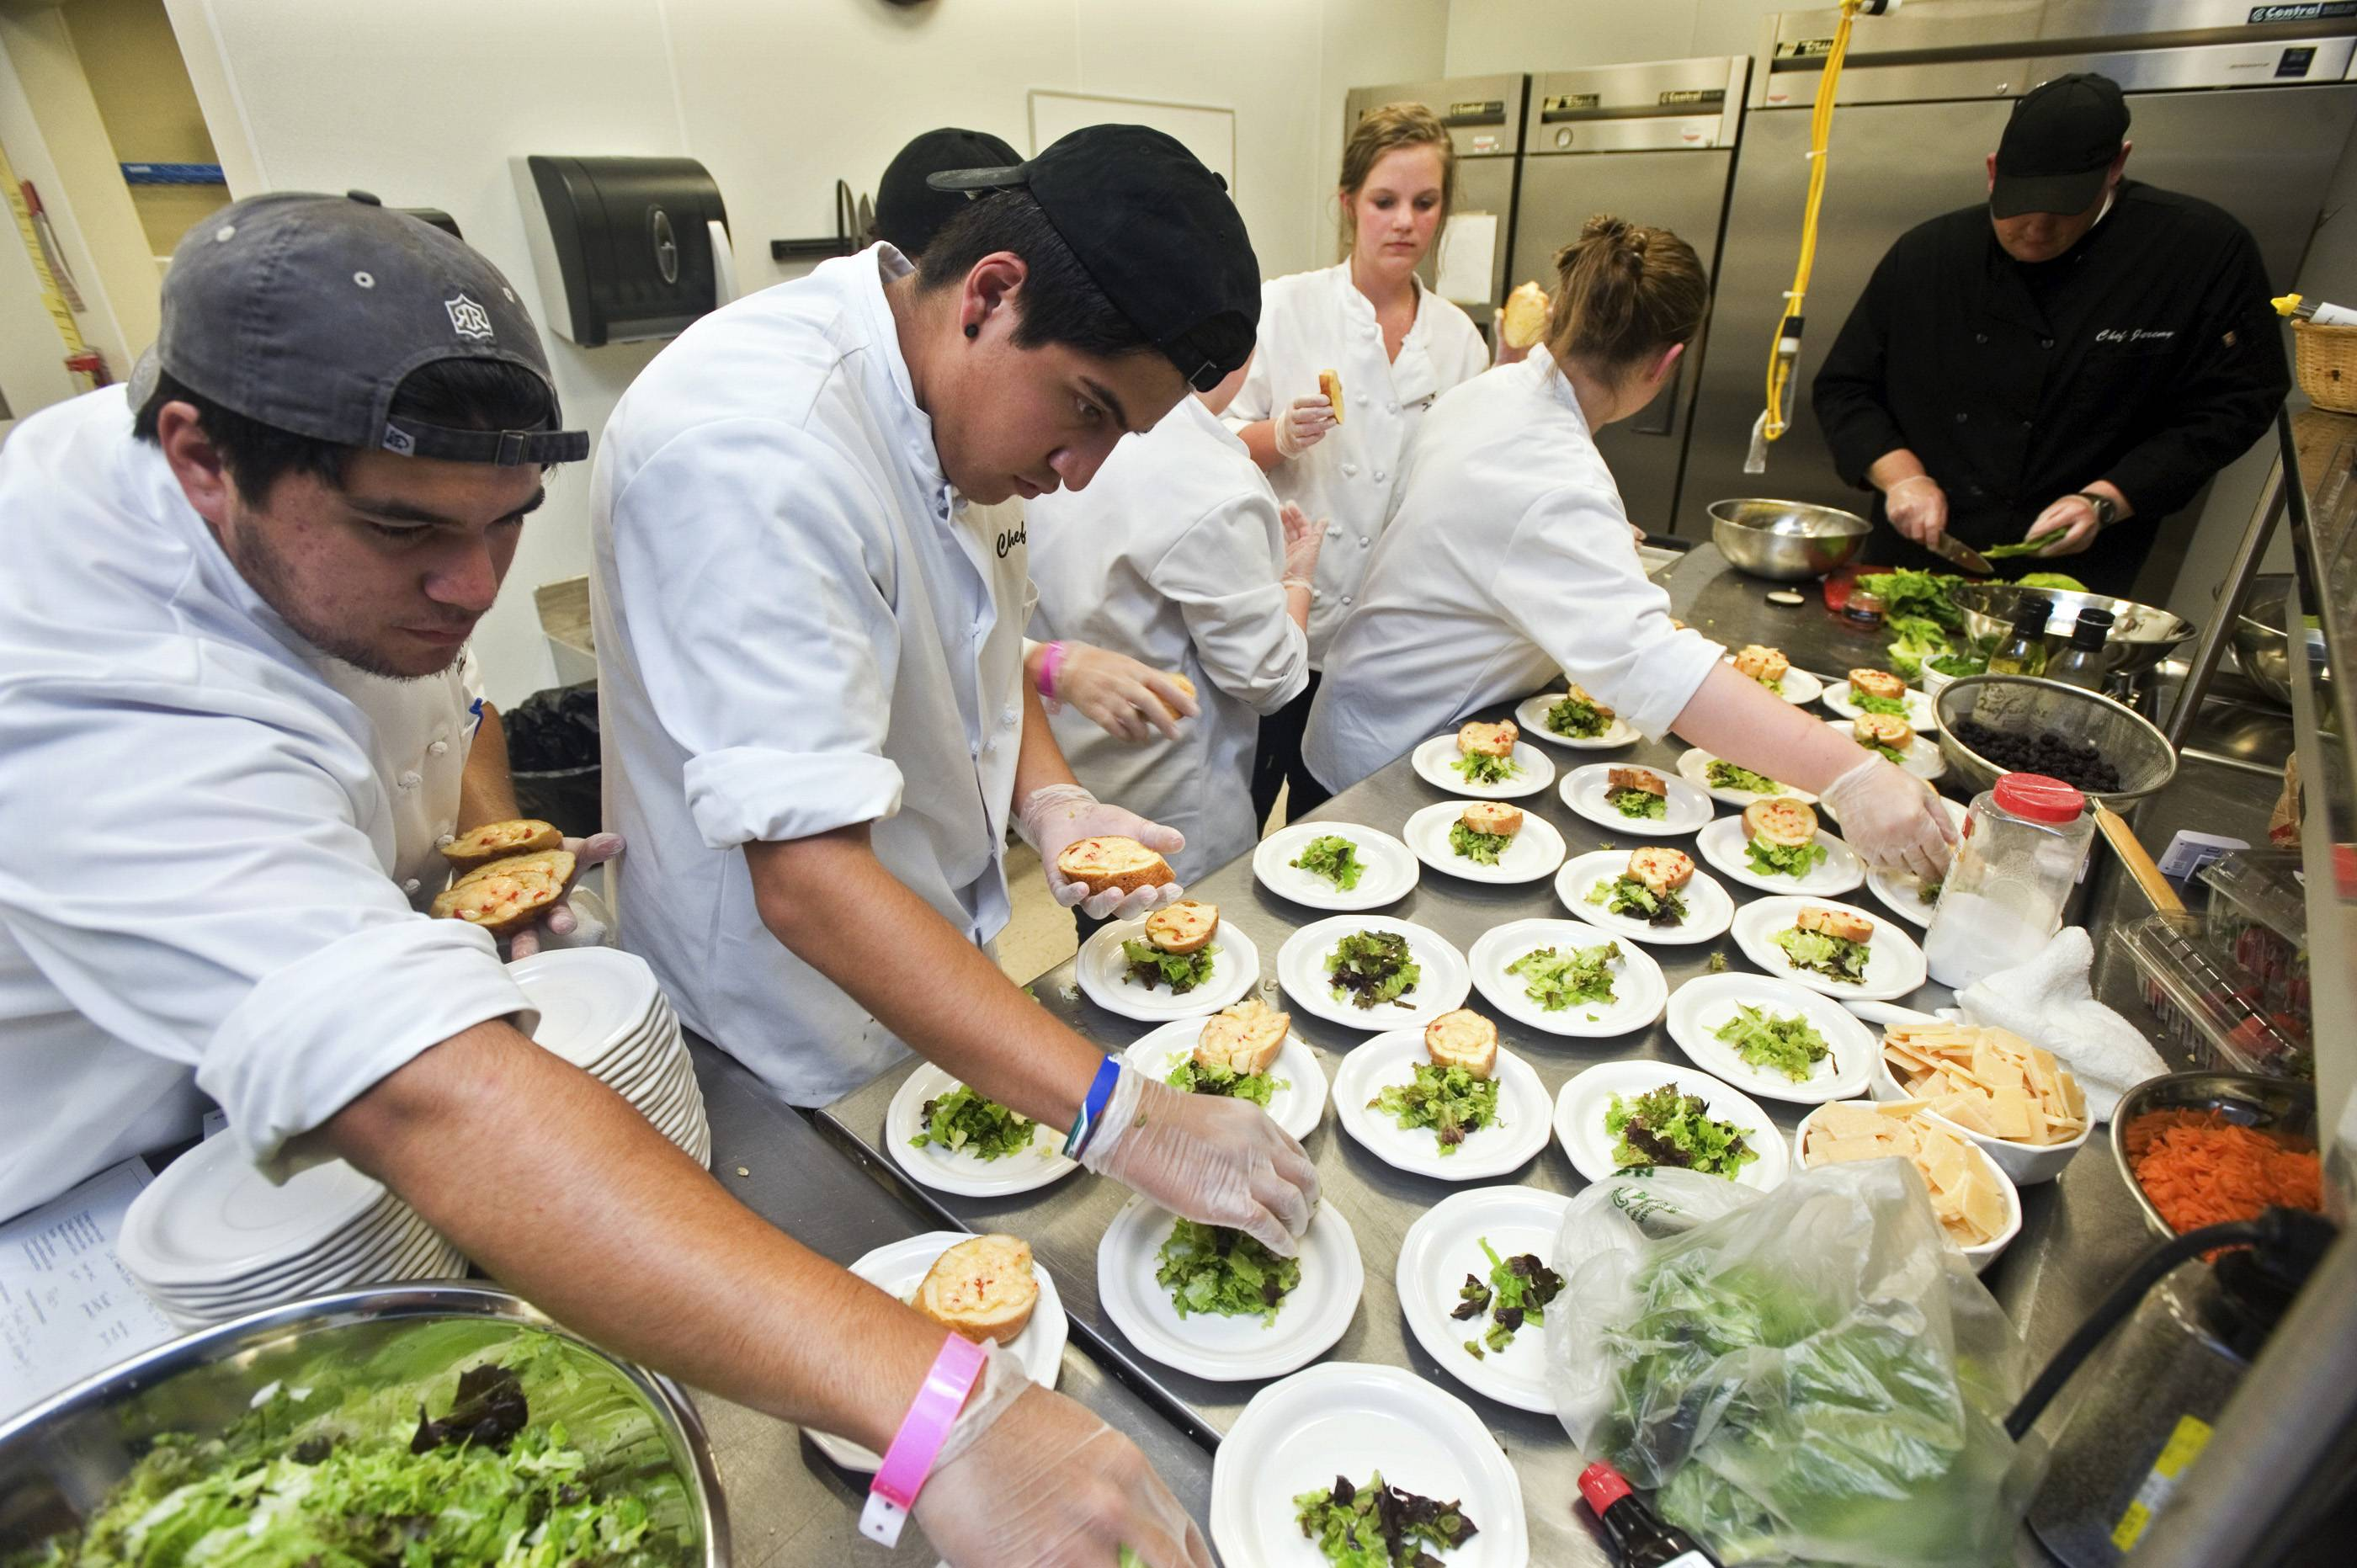 Students work on preparing bruschetta during a culinary camp at Eastern Illinois University in Charleston. Jeremy Ryan, right, is assisting EIU's Apprentice Chef Cooking School as head chef during the program.